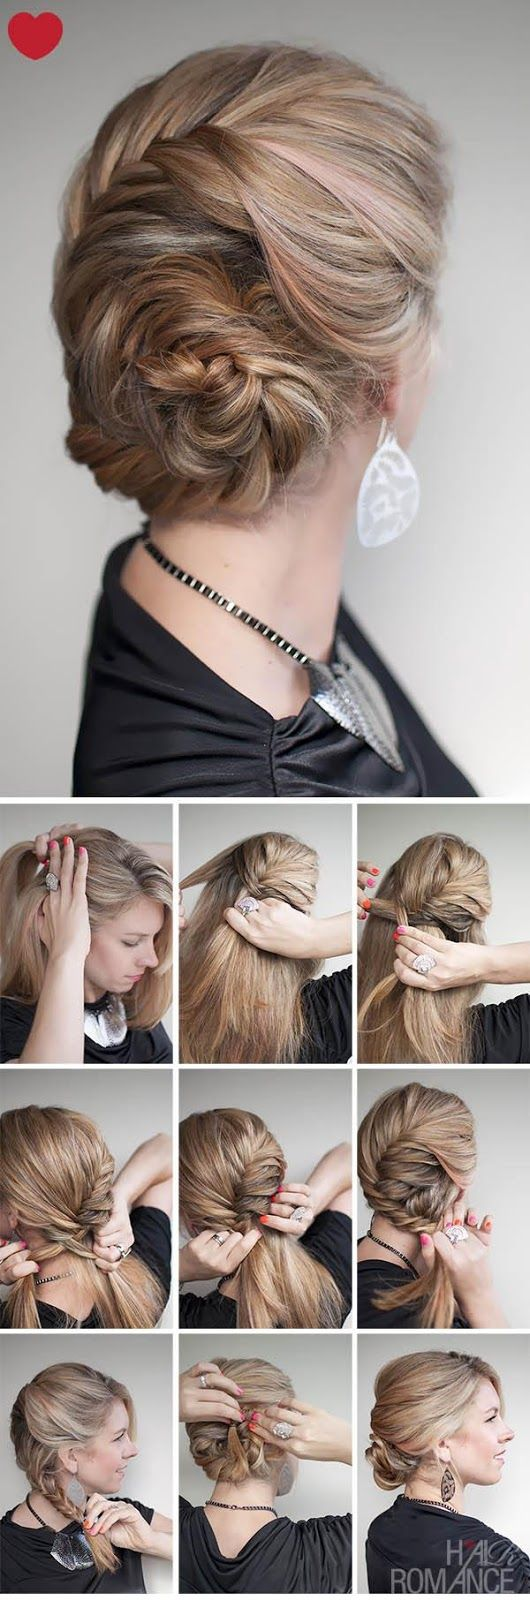 23 Great Elegant Hairstyles Ideas and Tutorials (16)